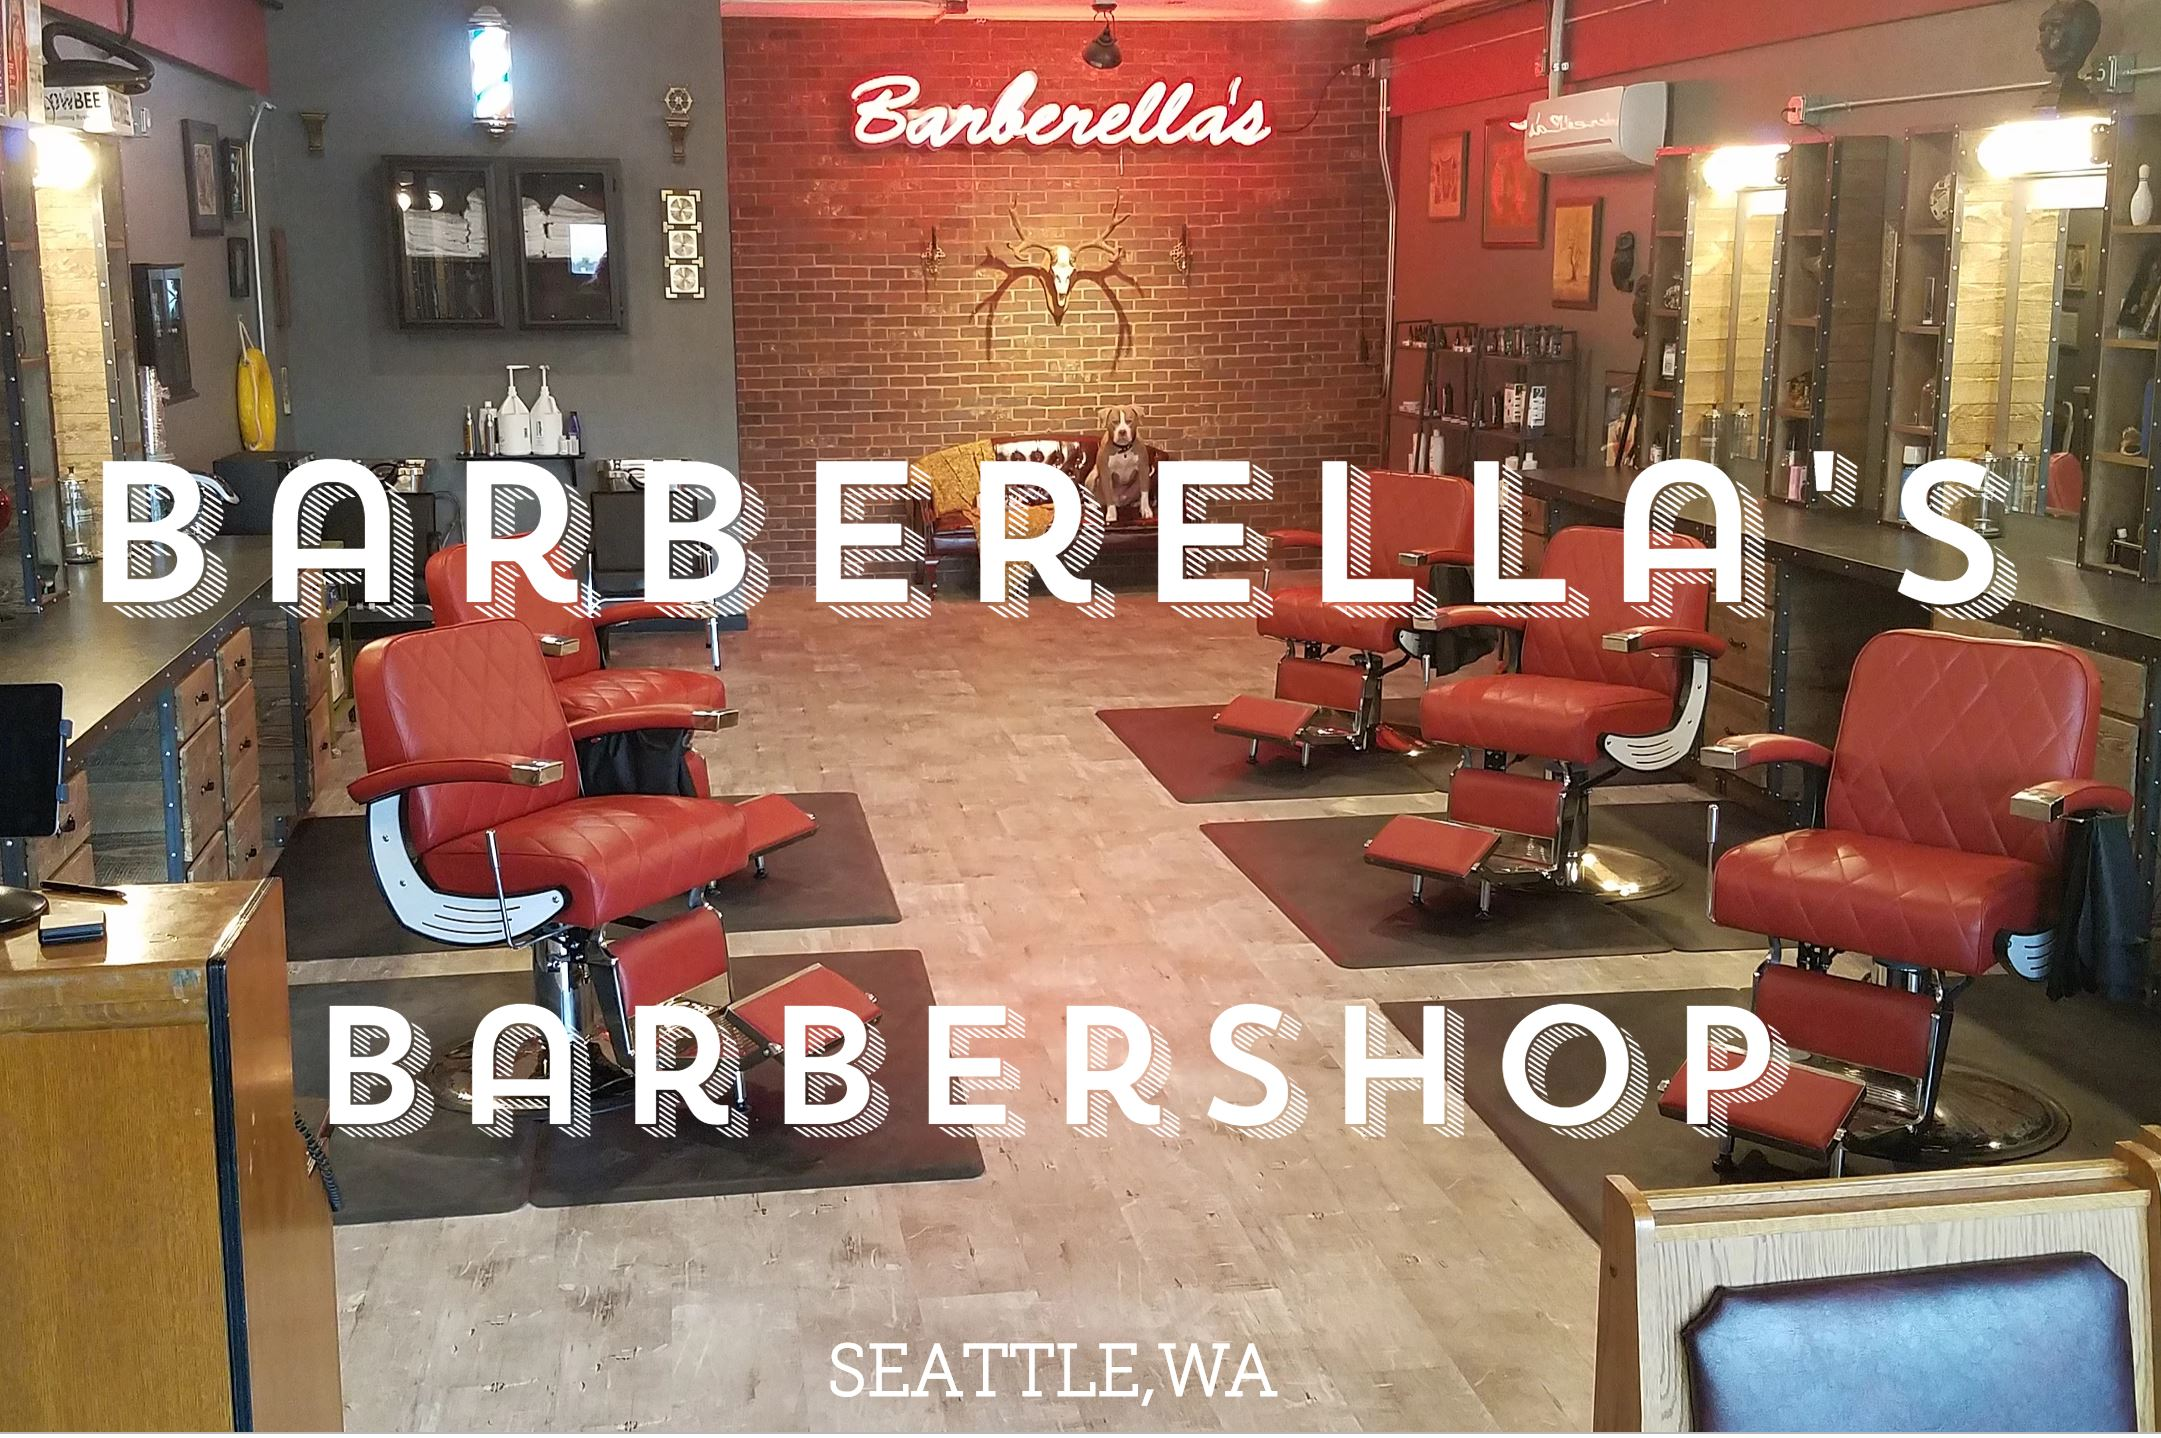 Barbarella's Barbershop - Thanks for the raffle donations!